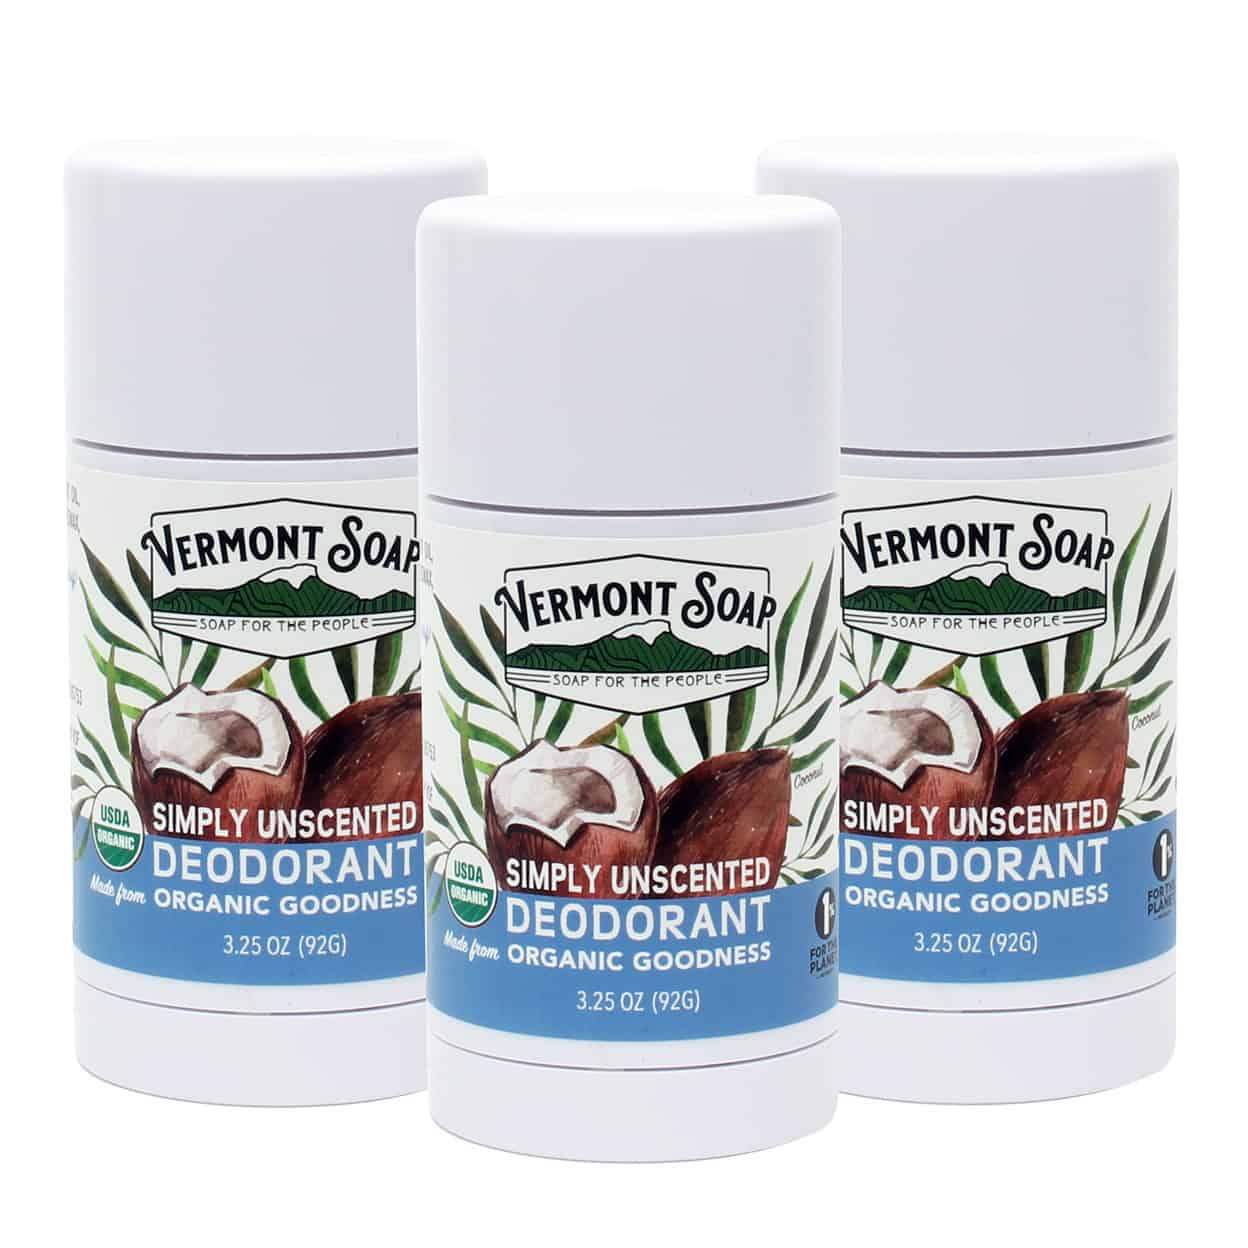 83bd8afc8197 Organic Deodorant from Vermont Soap - All Nautral Aluminum Free